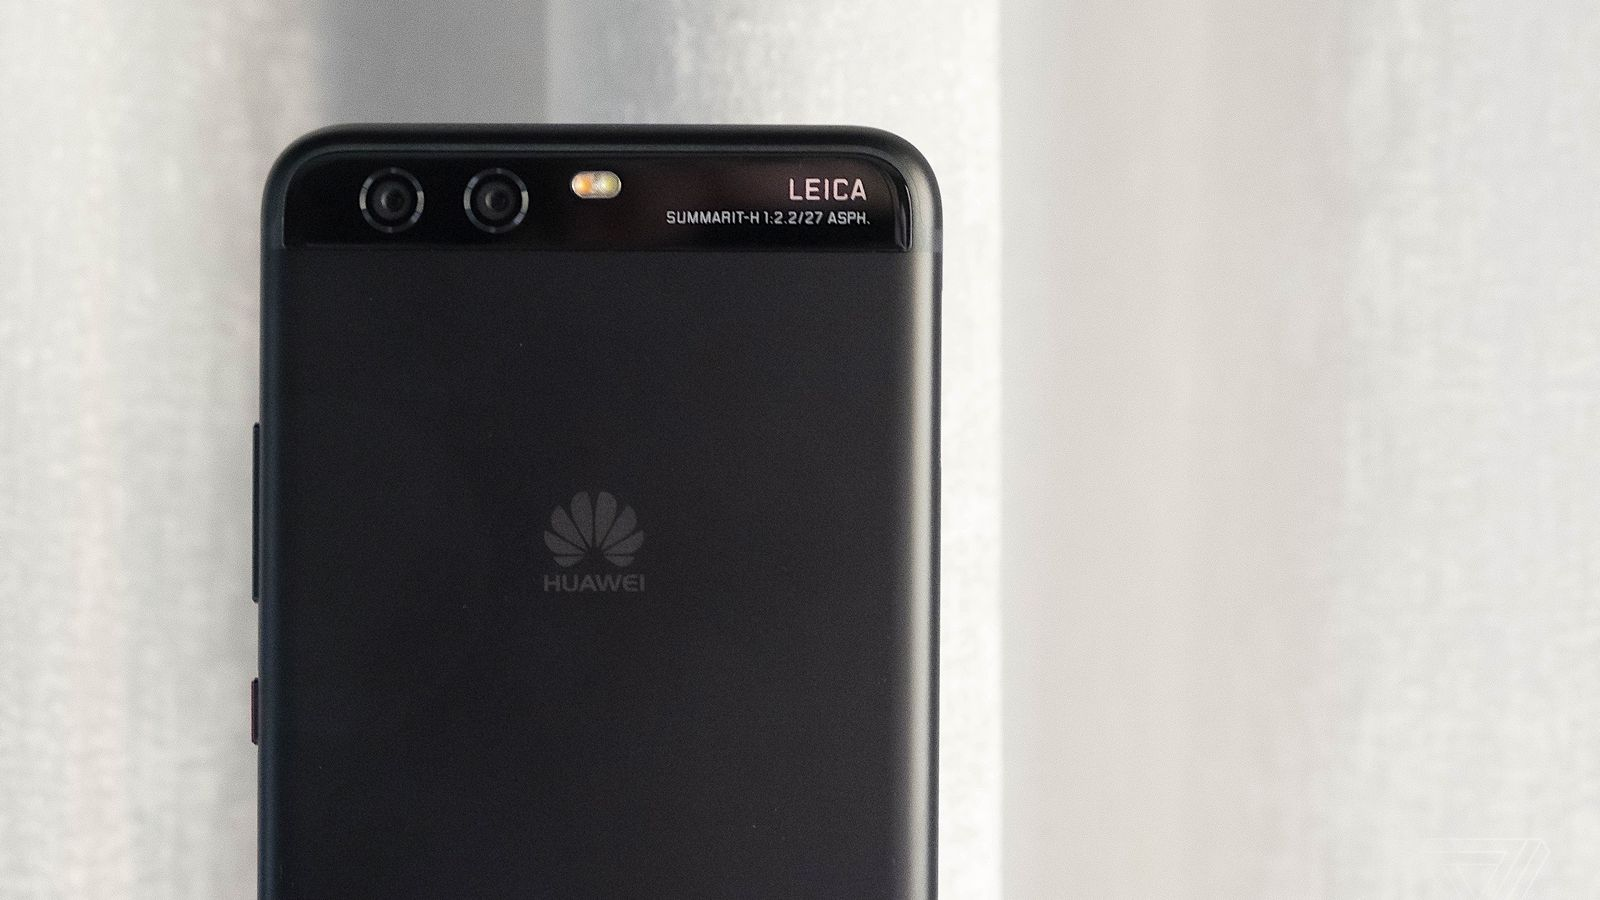 Can The Huawei P10s Leica Style Portraits Beat The IPhone 7 Plus